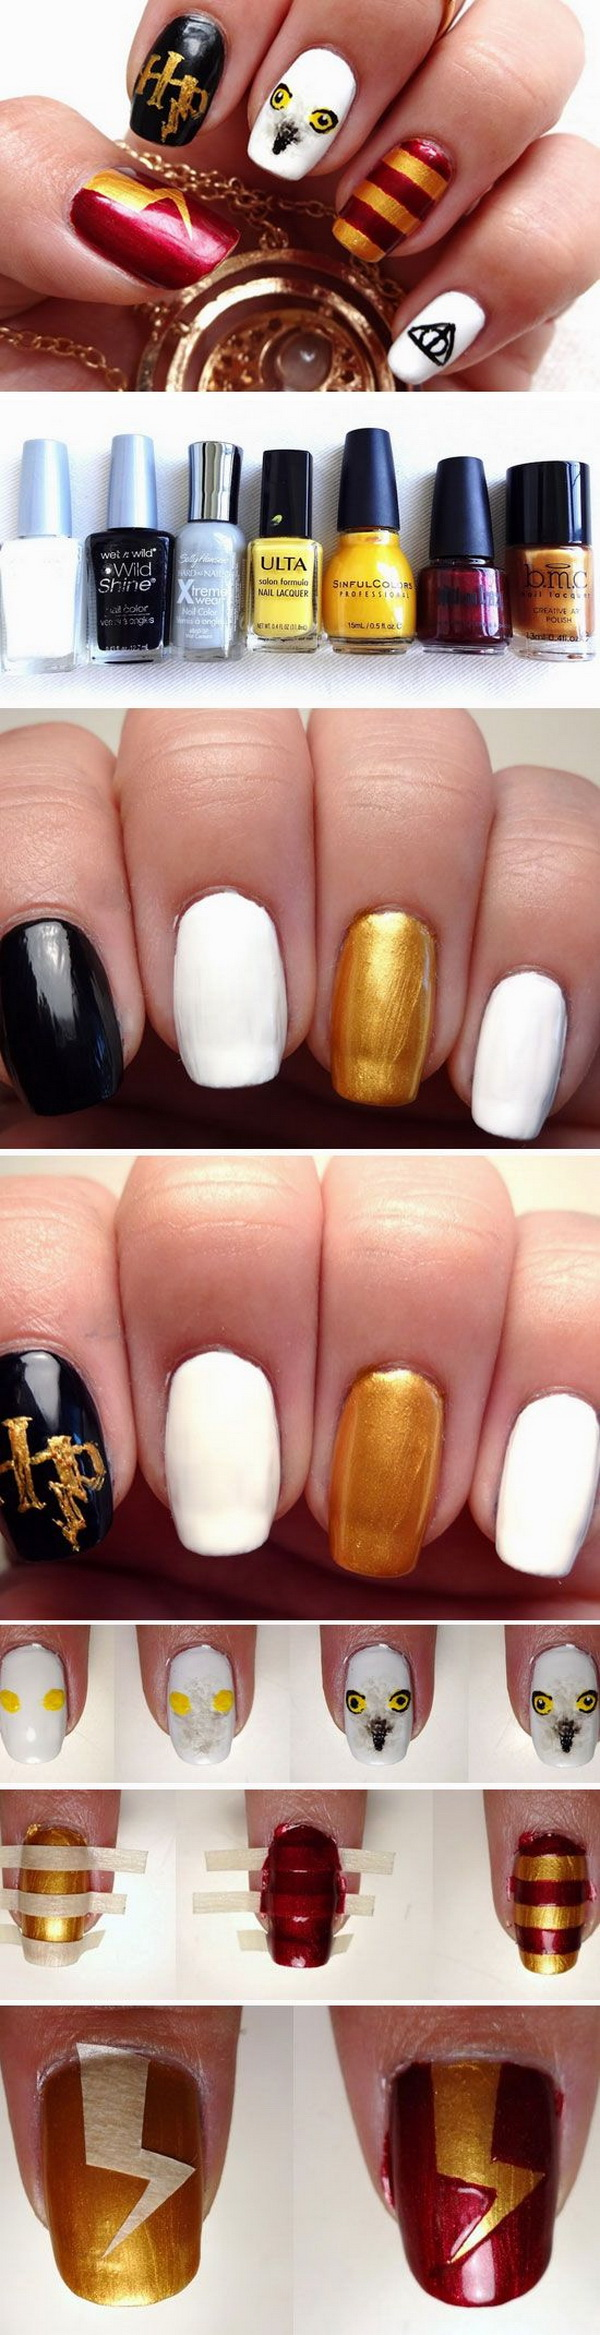 Harry Potter Nail Design for Halloween.